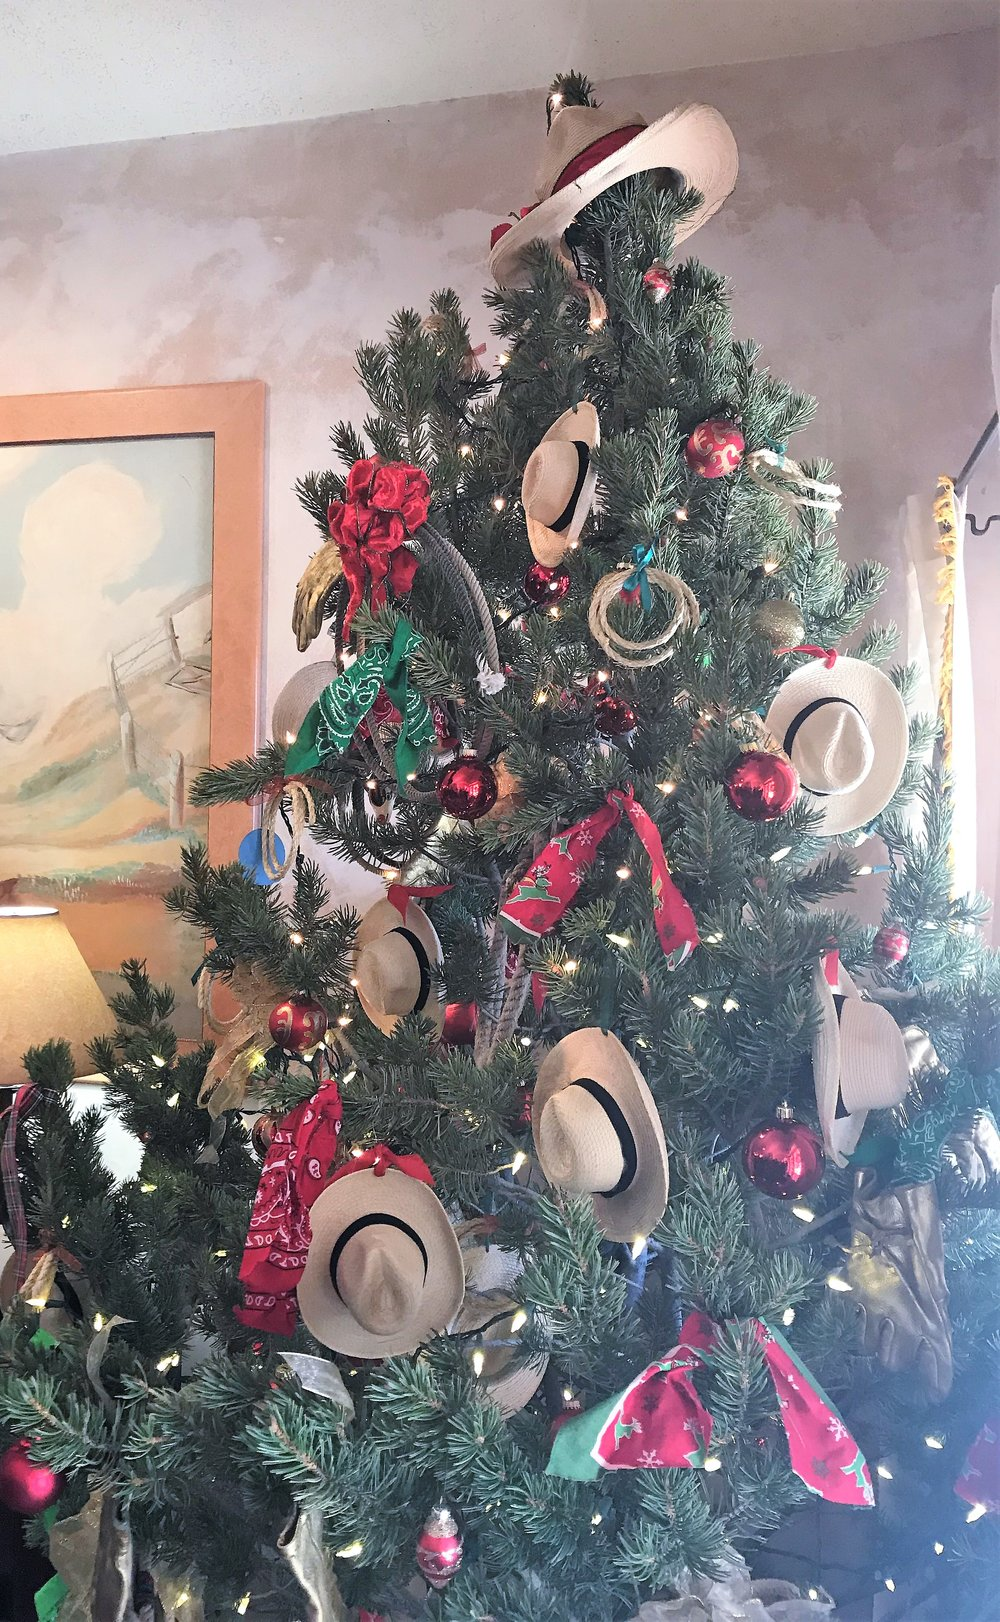 A Western style Christmas tree at the Sierra Grande Lodge in Truth or Consequences, New Mexico. Mini cowboy hats, lariats and handkerchiefs decorate the tree. The lodge is owned by Ted Turner Expeditions.